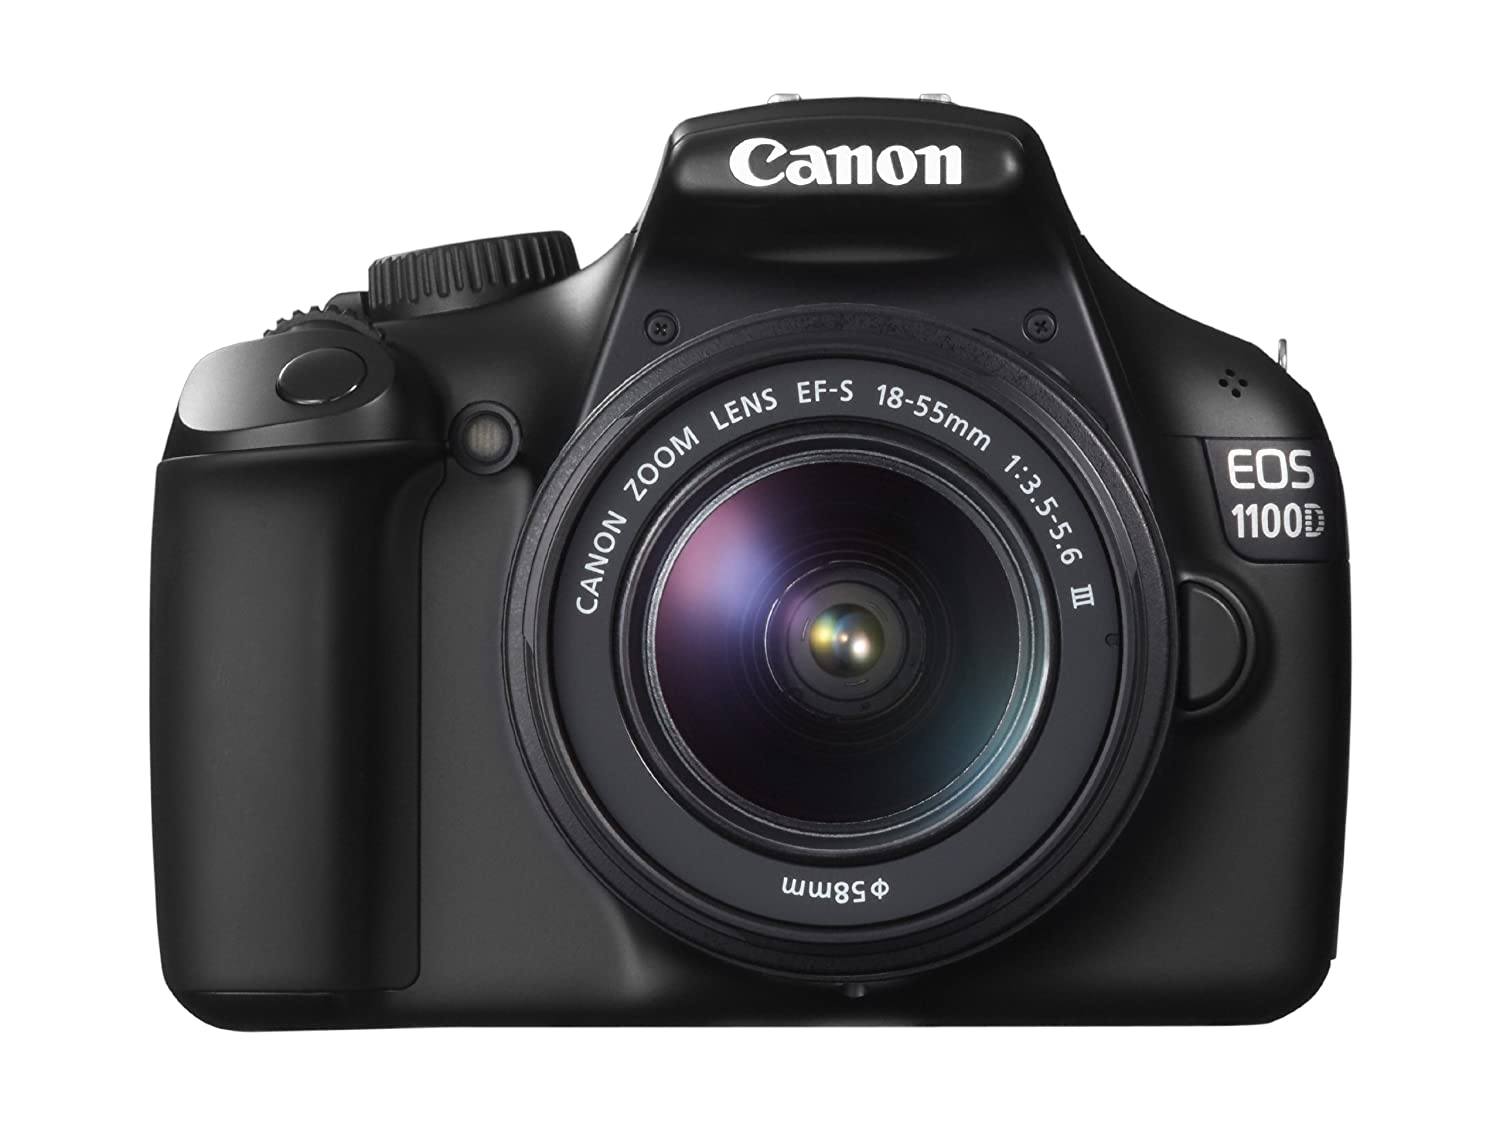 Amazon.com : Canon EOS 1100D DSLR Camera and 18-55mm IS II Lens Kit (Black)  : Camera & Photo